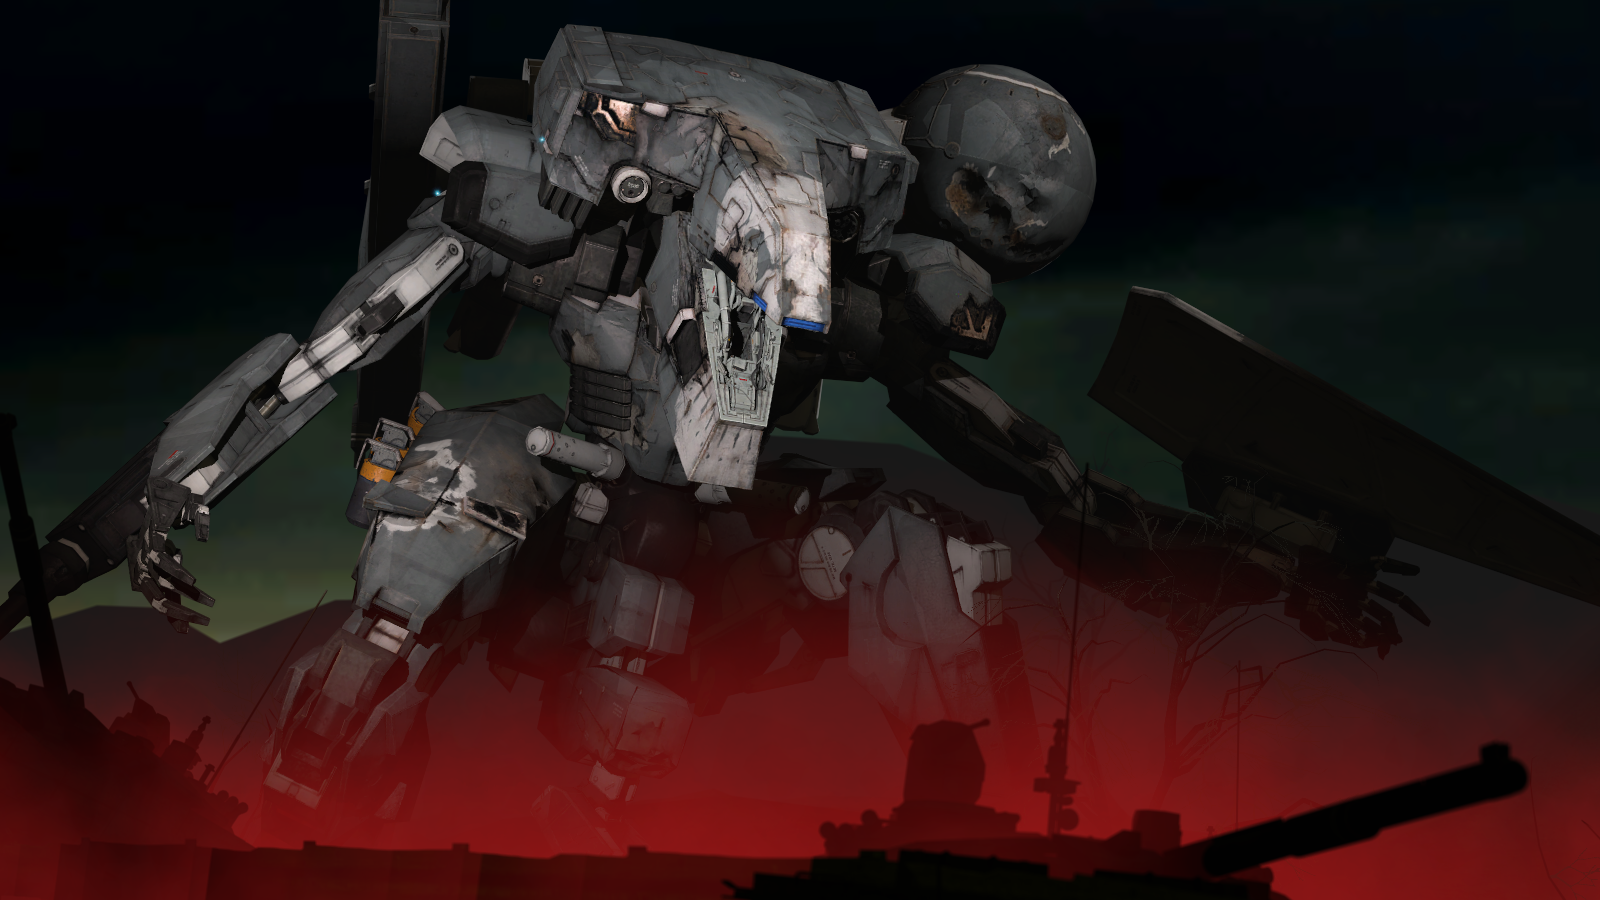 metal_gear_solid_v___sahelanthropus_by_t